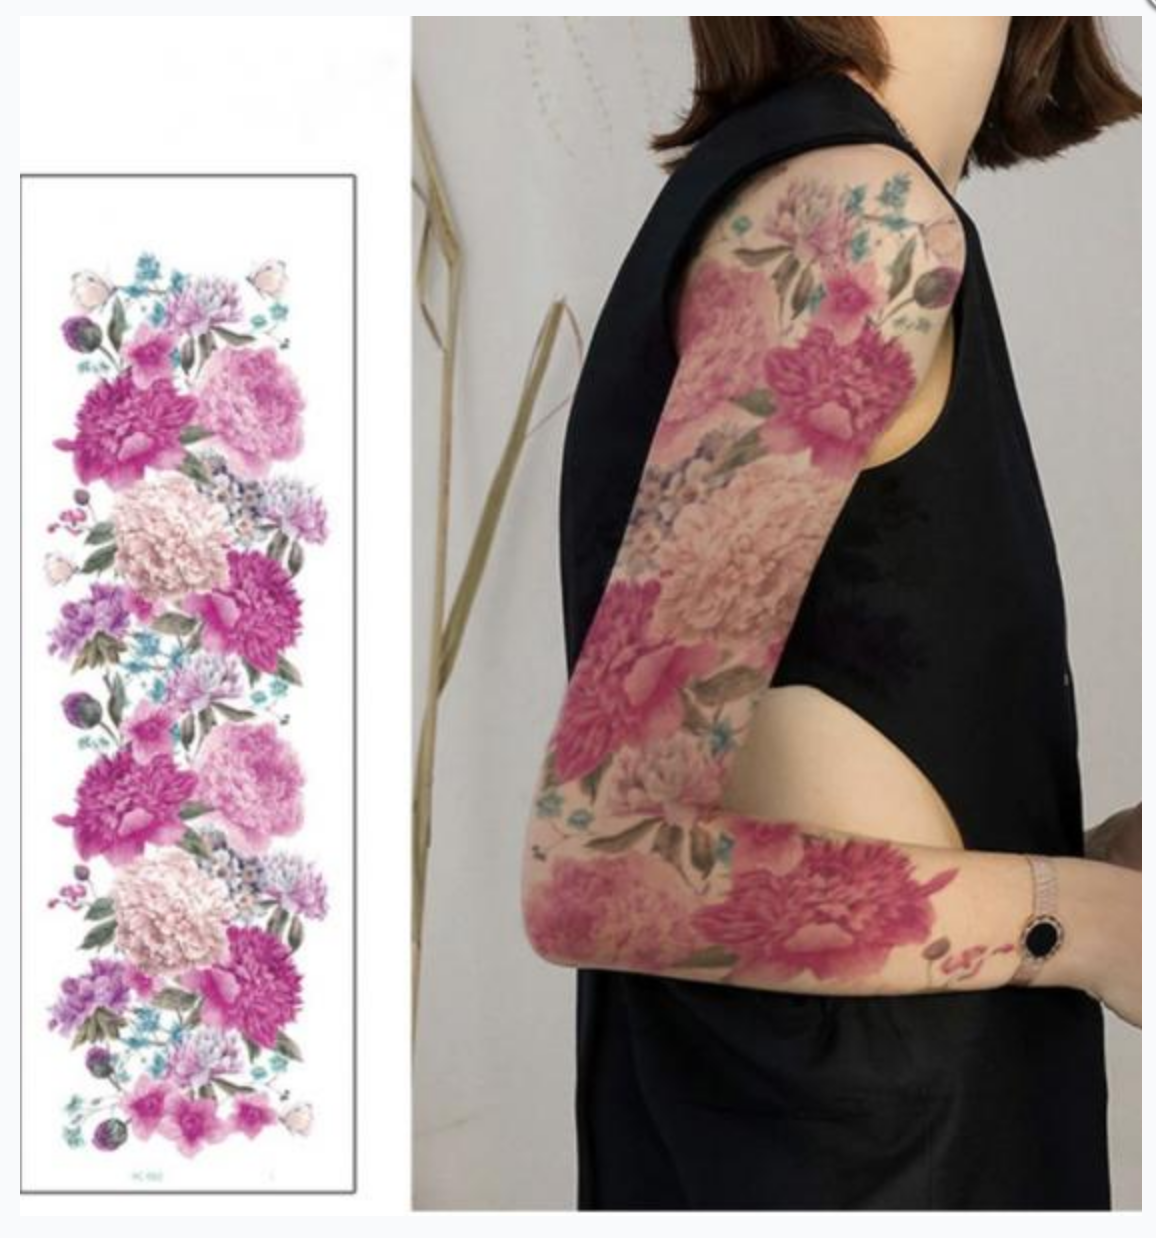 Tatouage temporaires hortensias sleeve boho boheme chic TATTOO0397